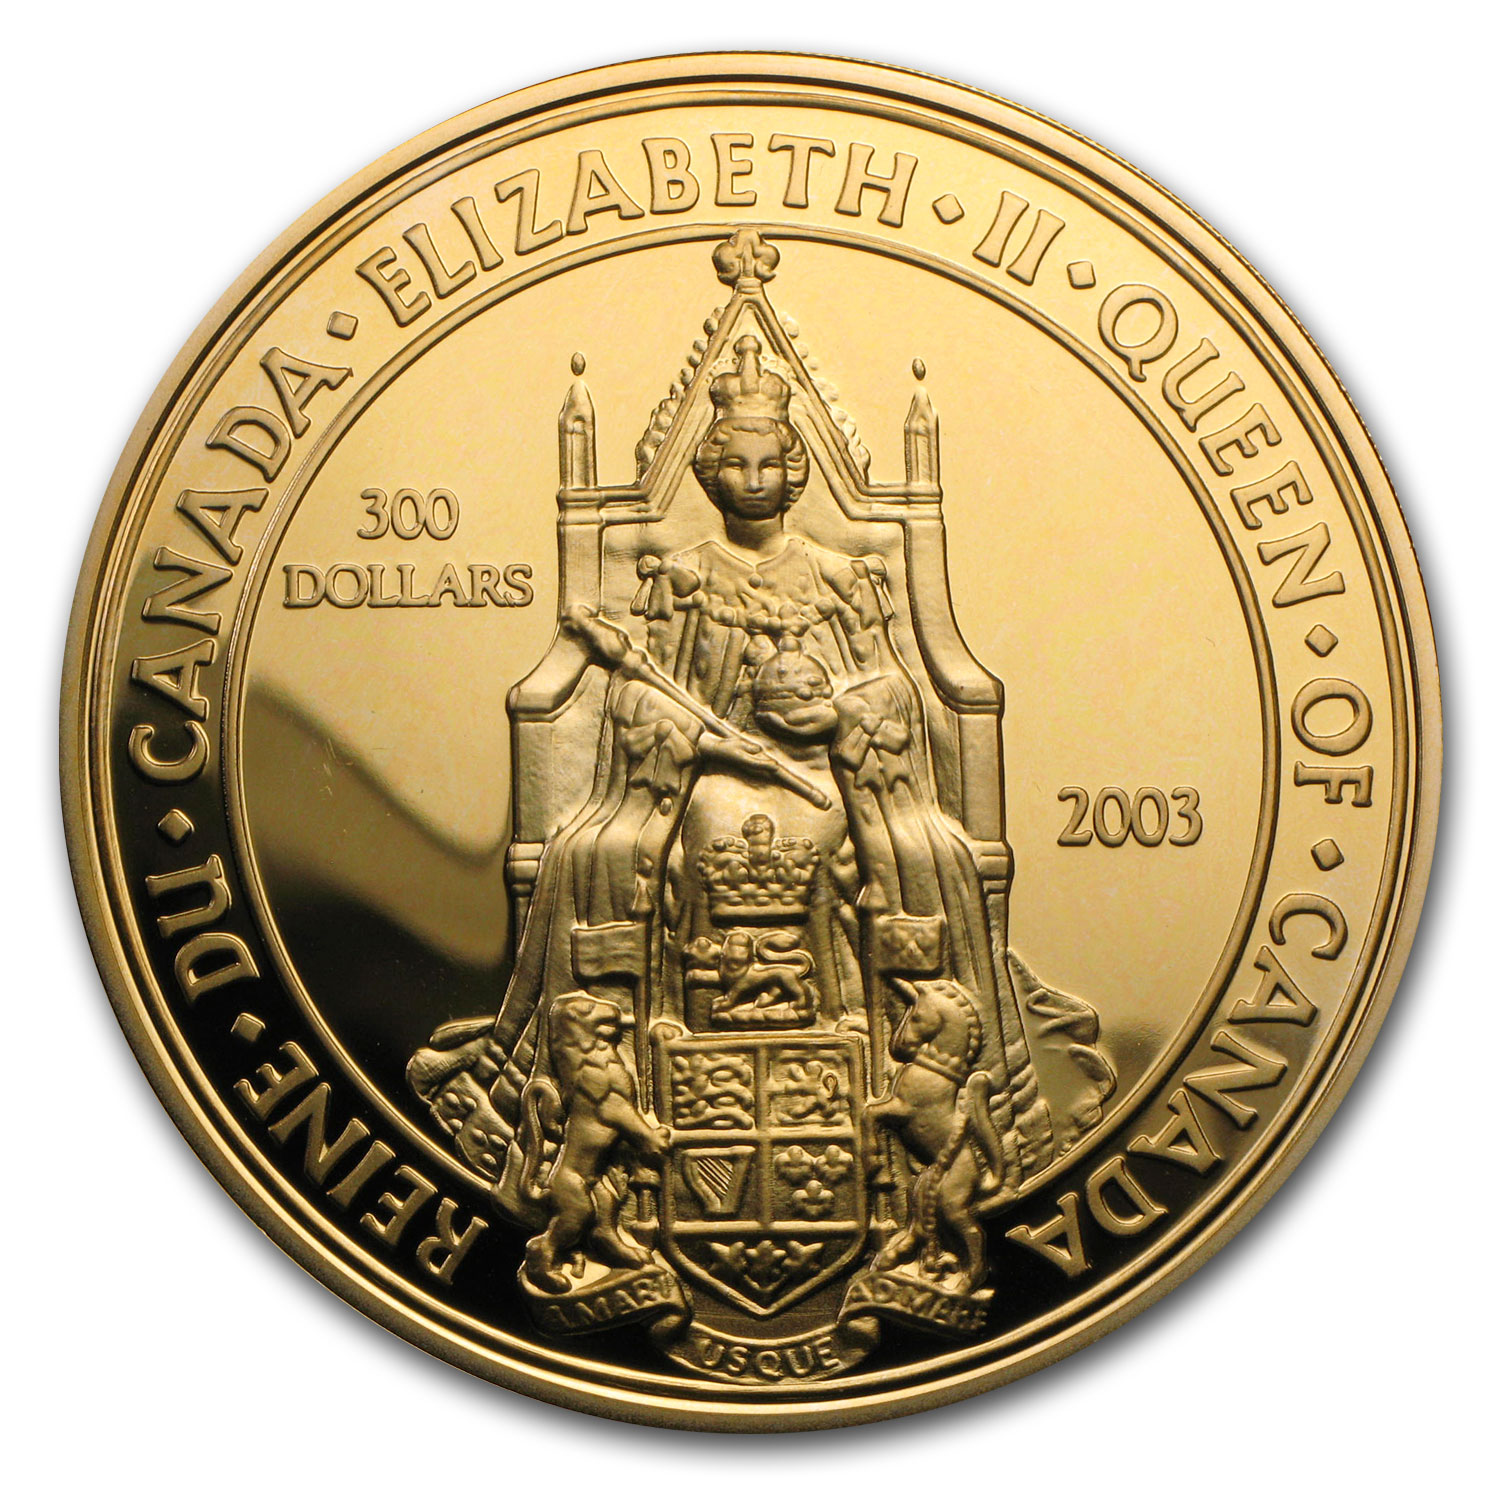 2003 Canada Proof Gold $300 Great Seal of Canada